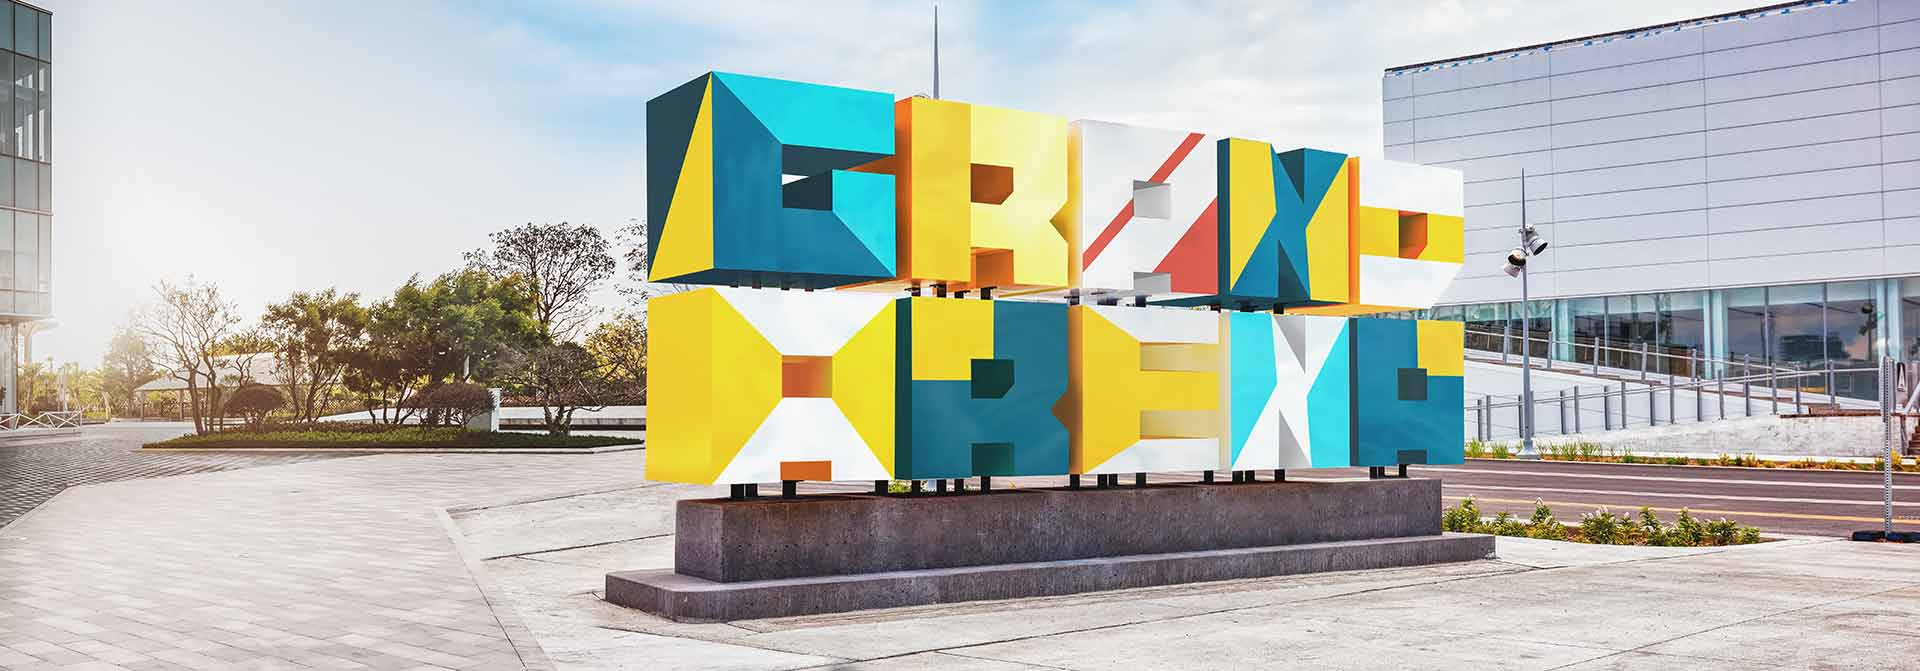 huge multicolored placemaking signage displayed outdoors